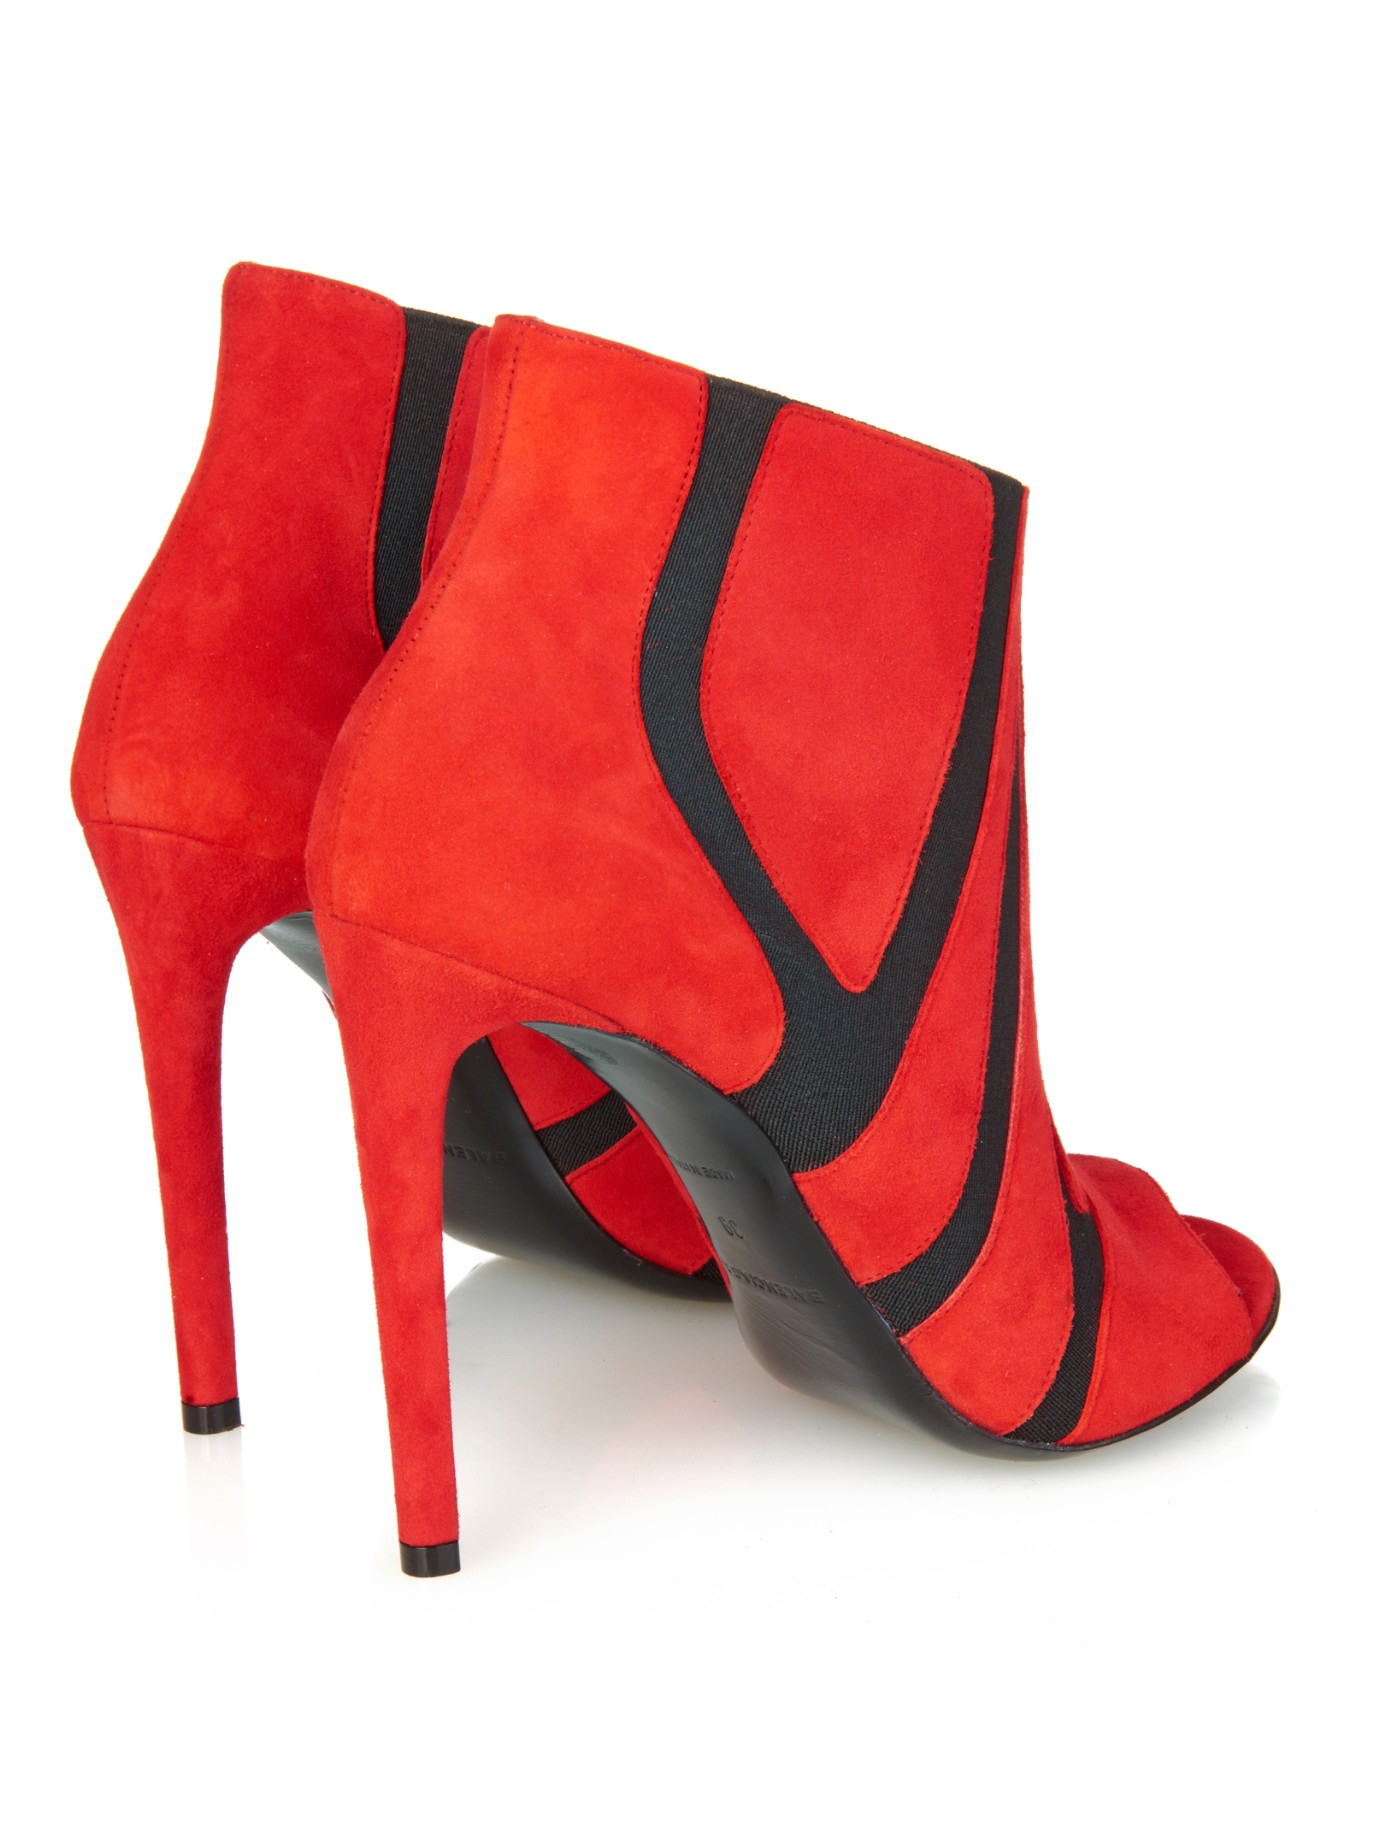 Balenciaga Graphic Suede Ankle Boots in Red - Lyst 021d05701e4e